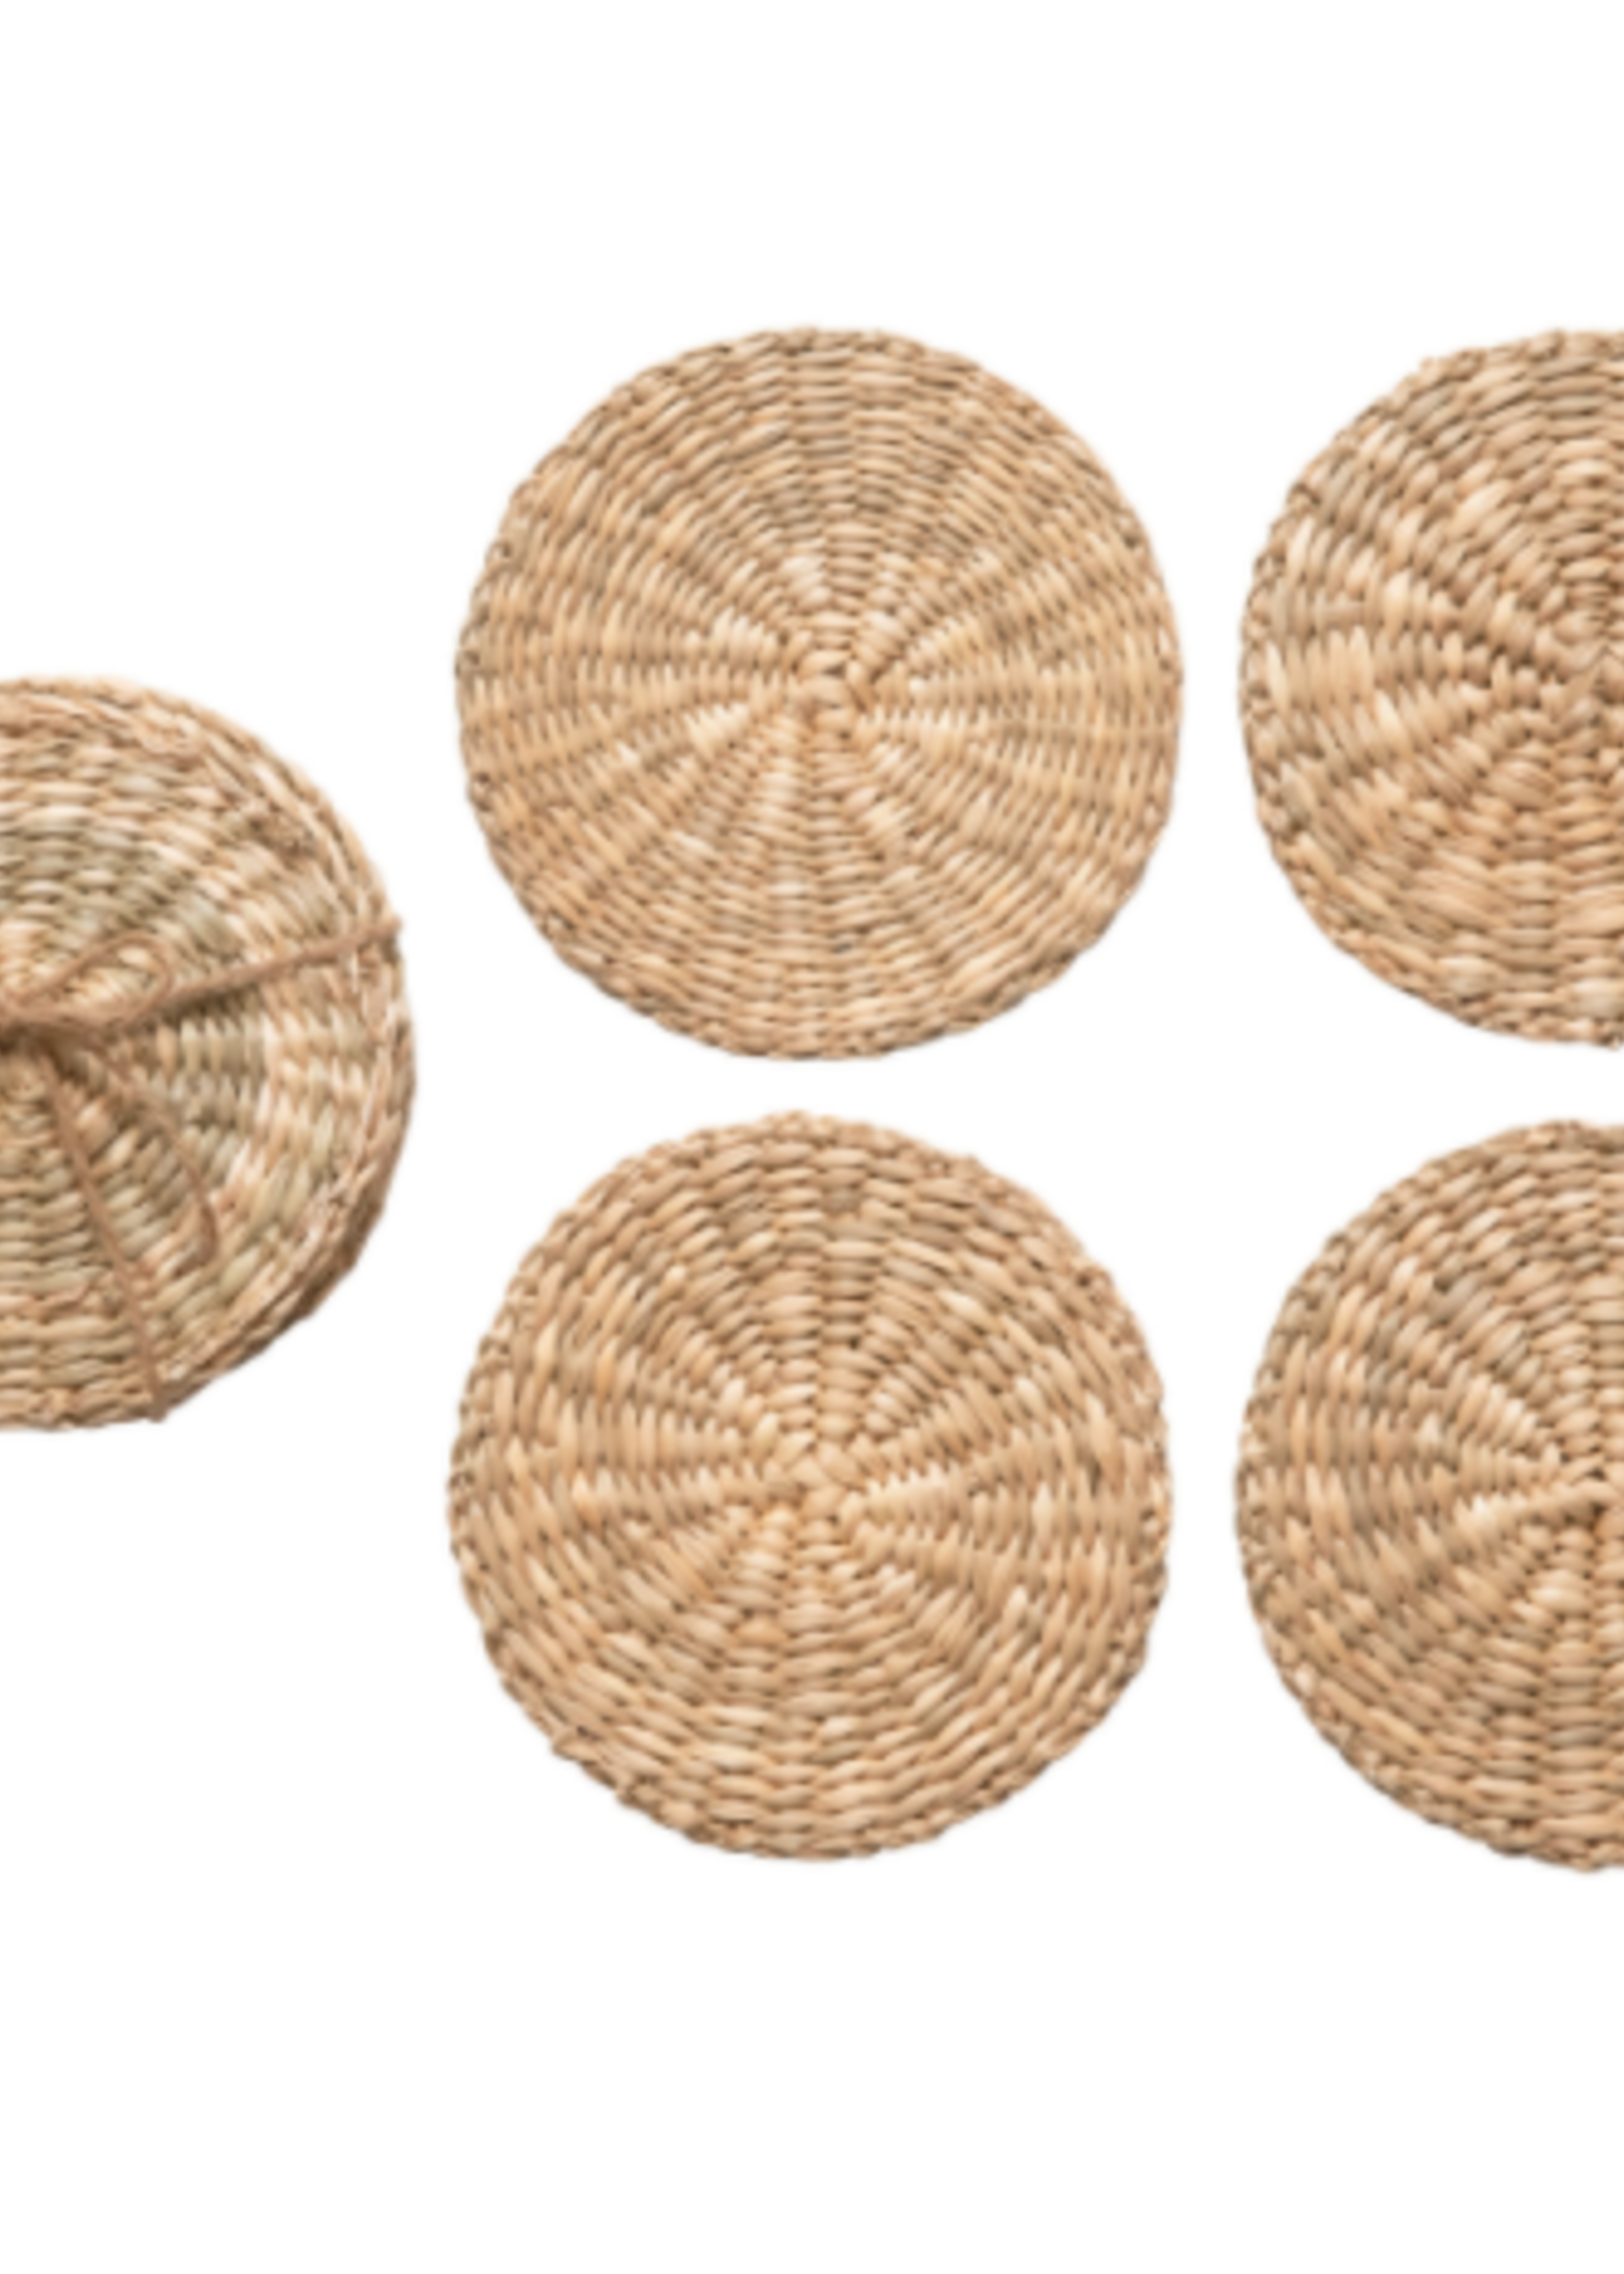 Round Hand-Woven Seagrass Coasters 4 Pack